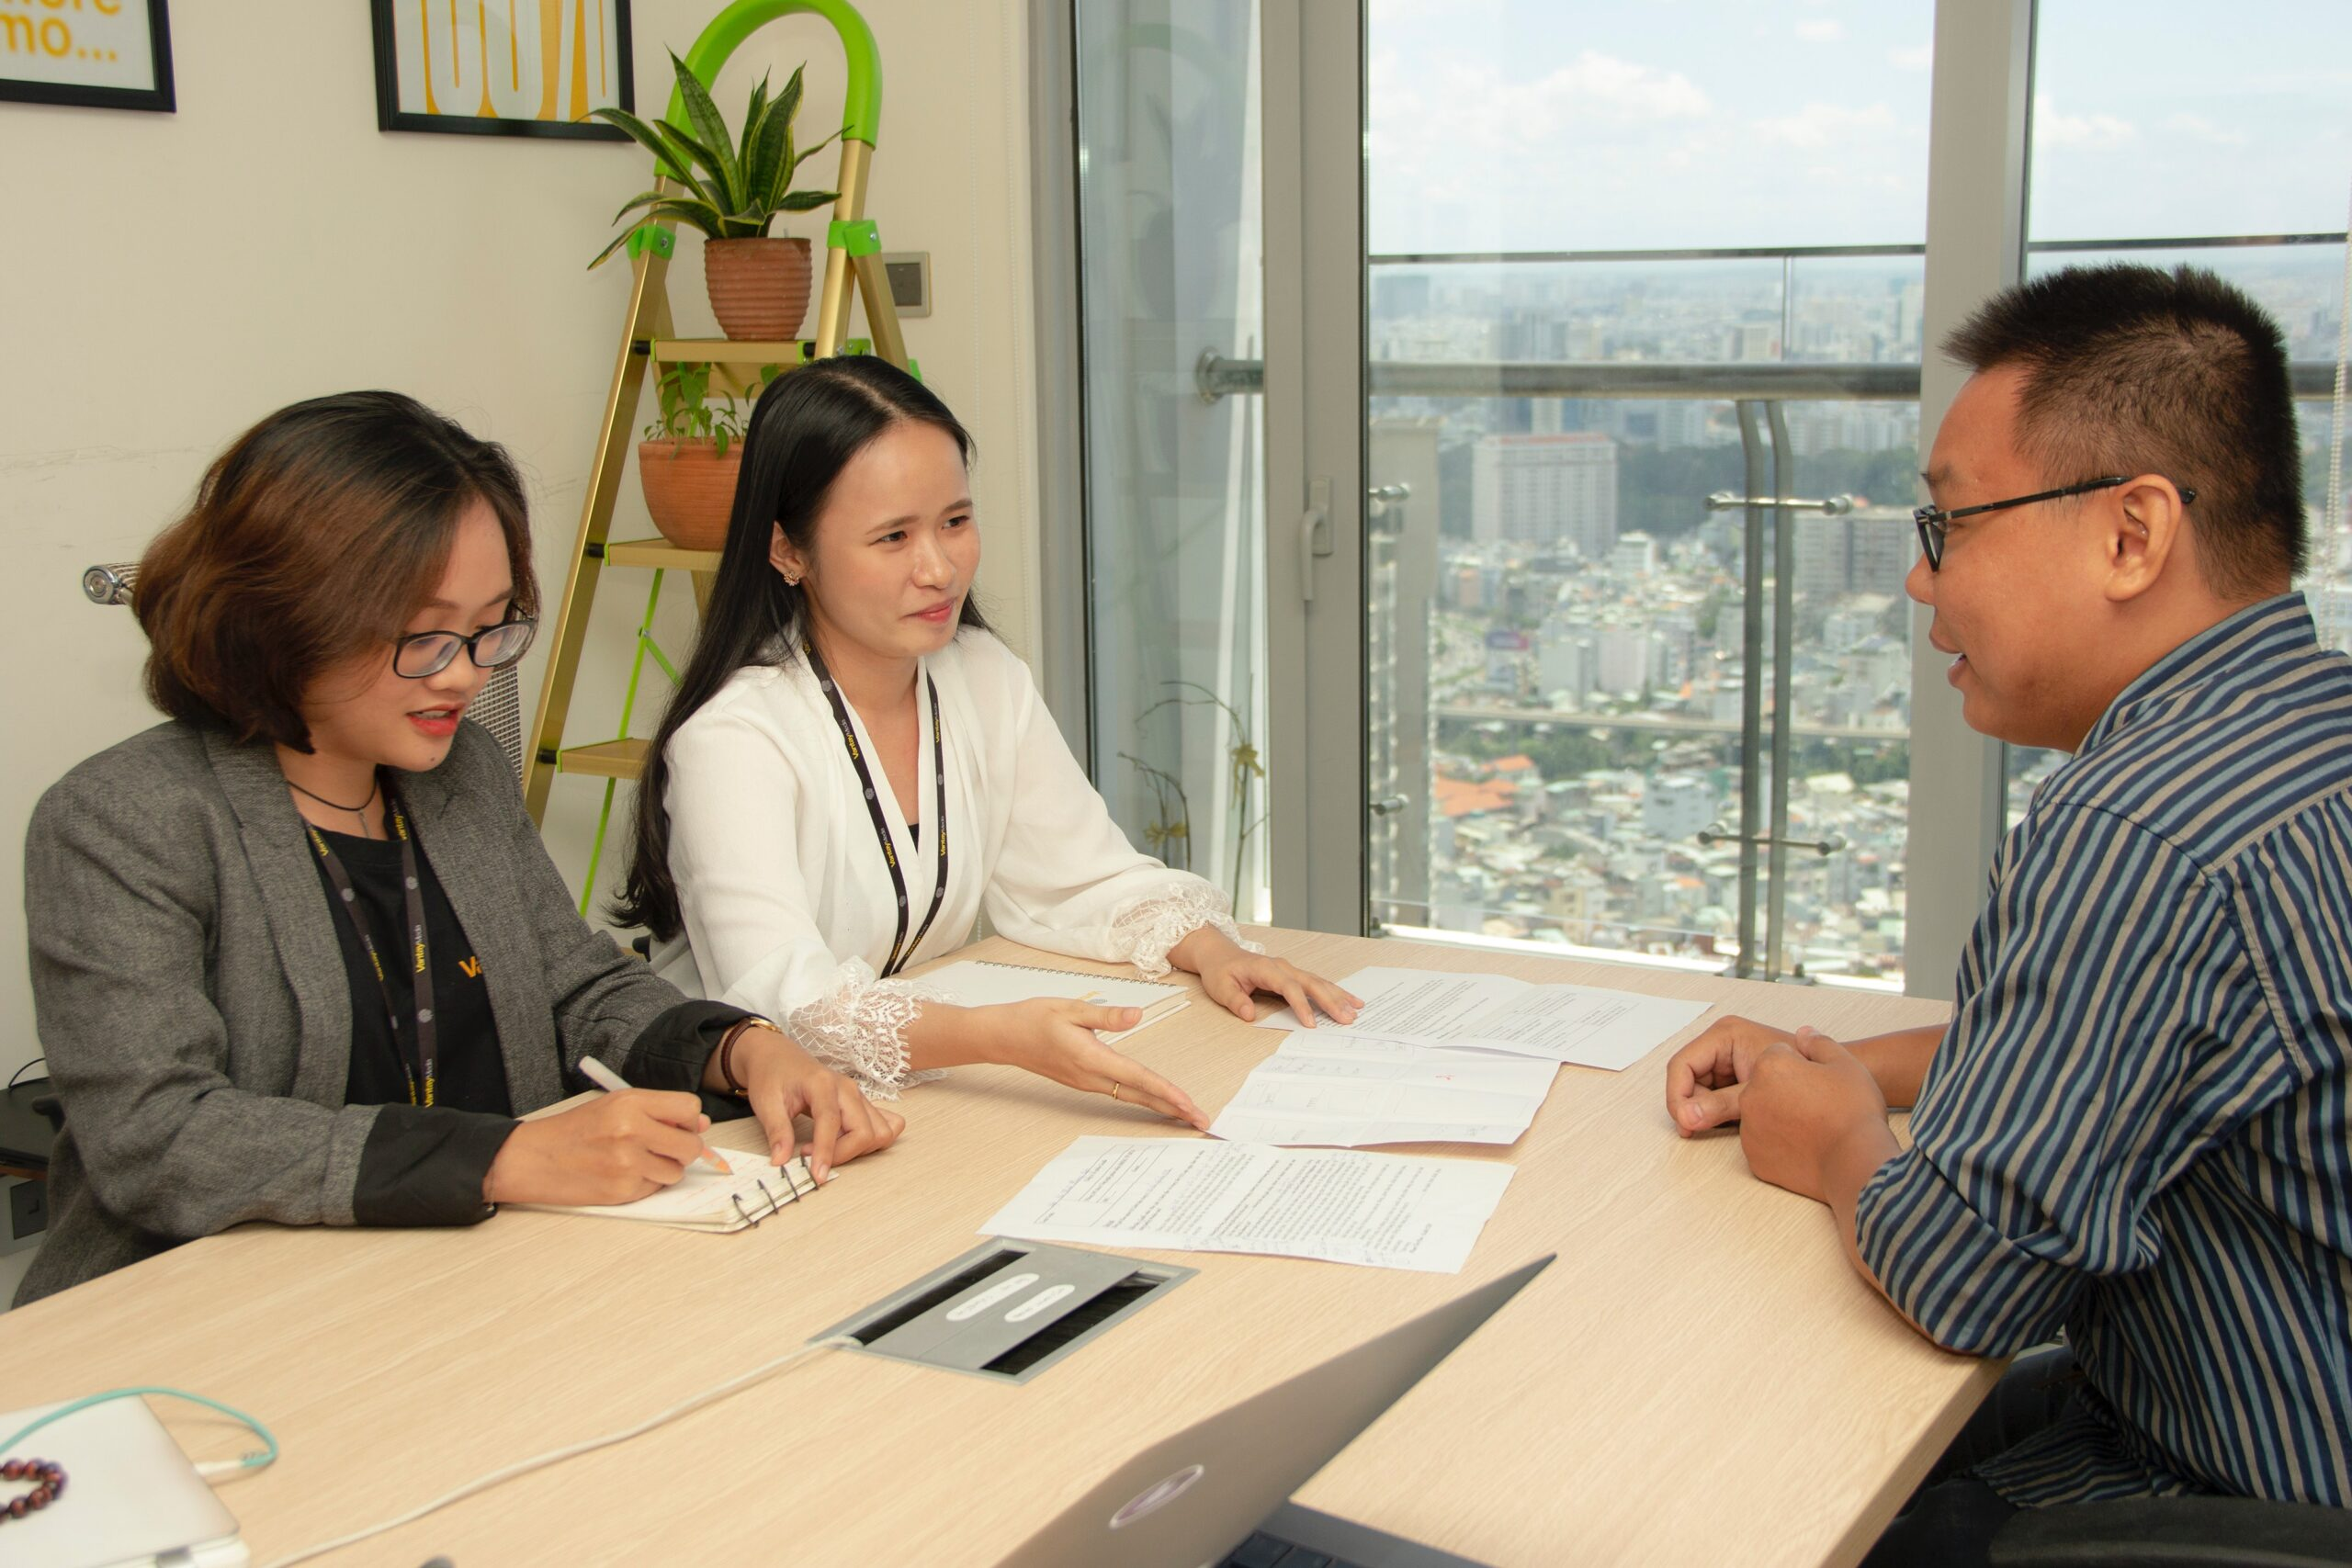 Two women and a man sitting on opposite ends of a table, in the interview process